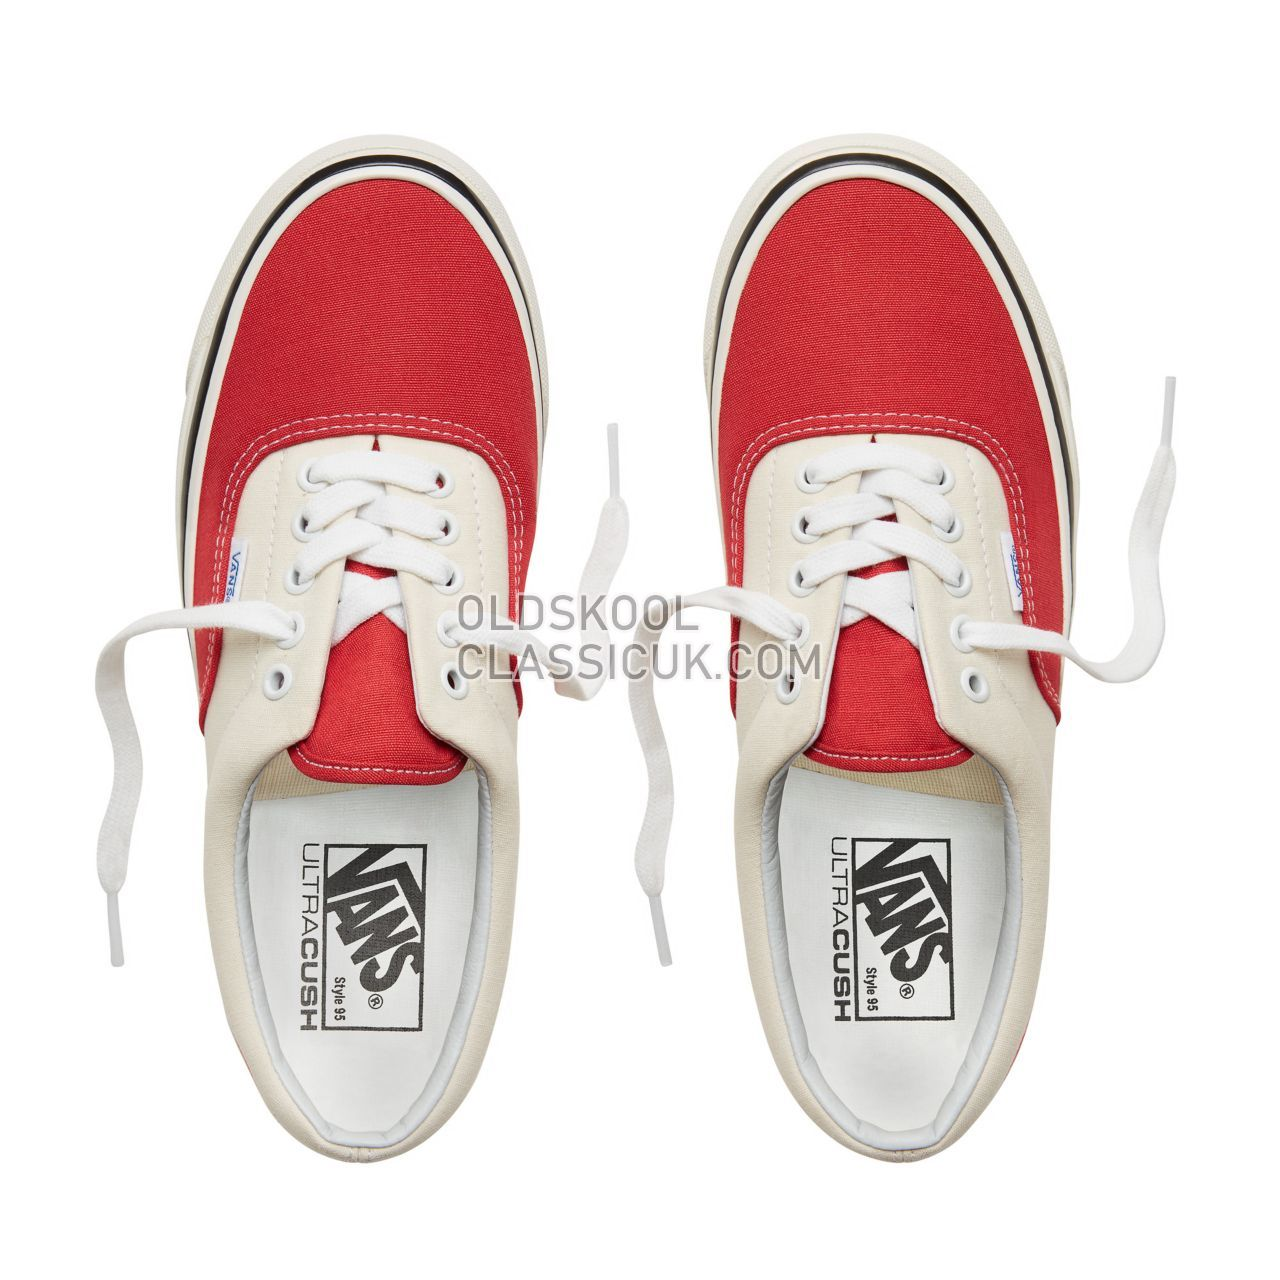 Vans Anaheim Factory Era 95 Sneakers Mens (Anaheim Factory) Og Red/Og White VA2RR1U8Q Shoes